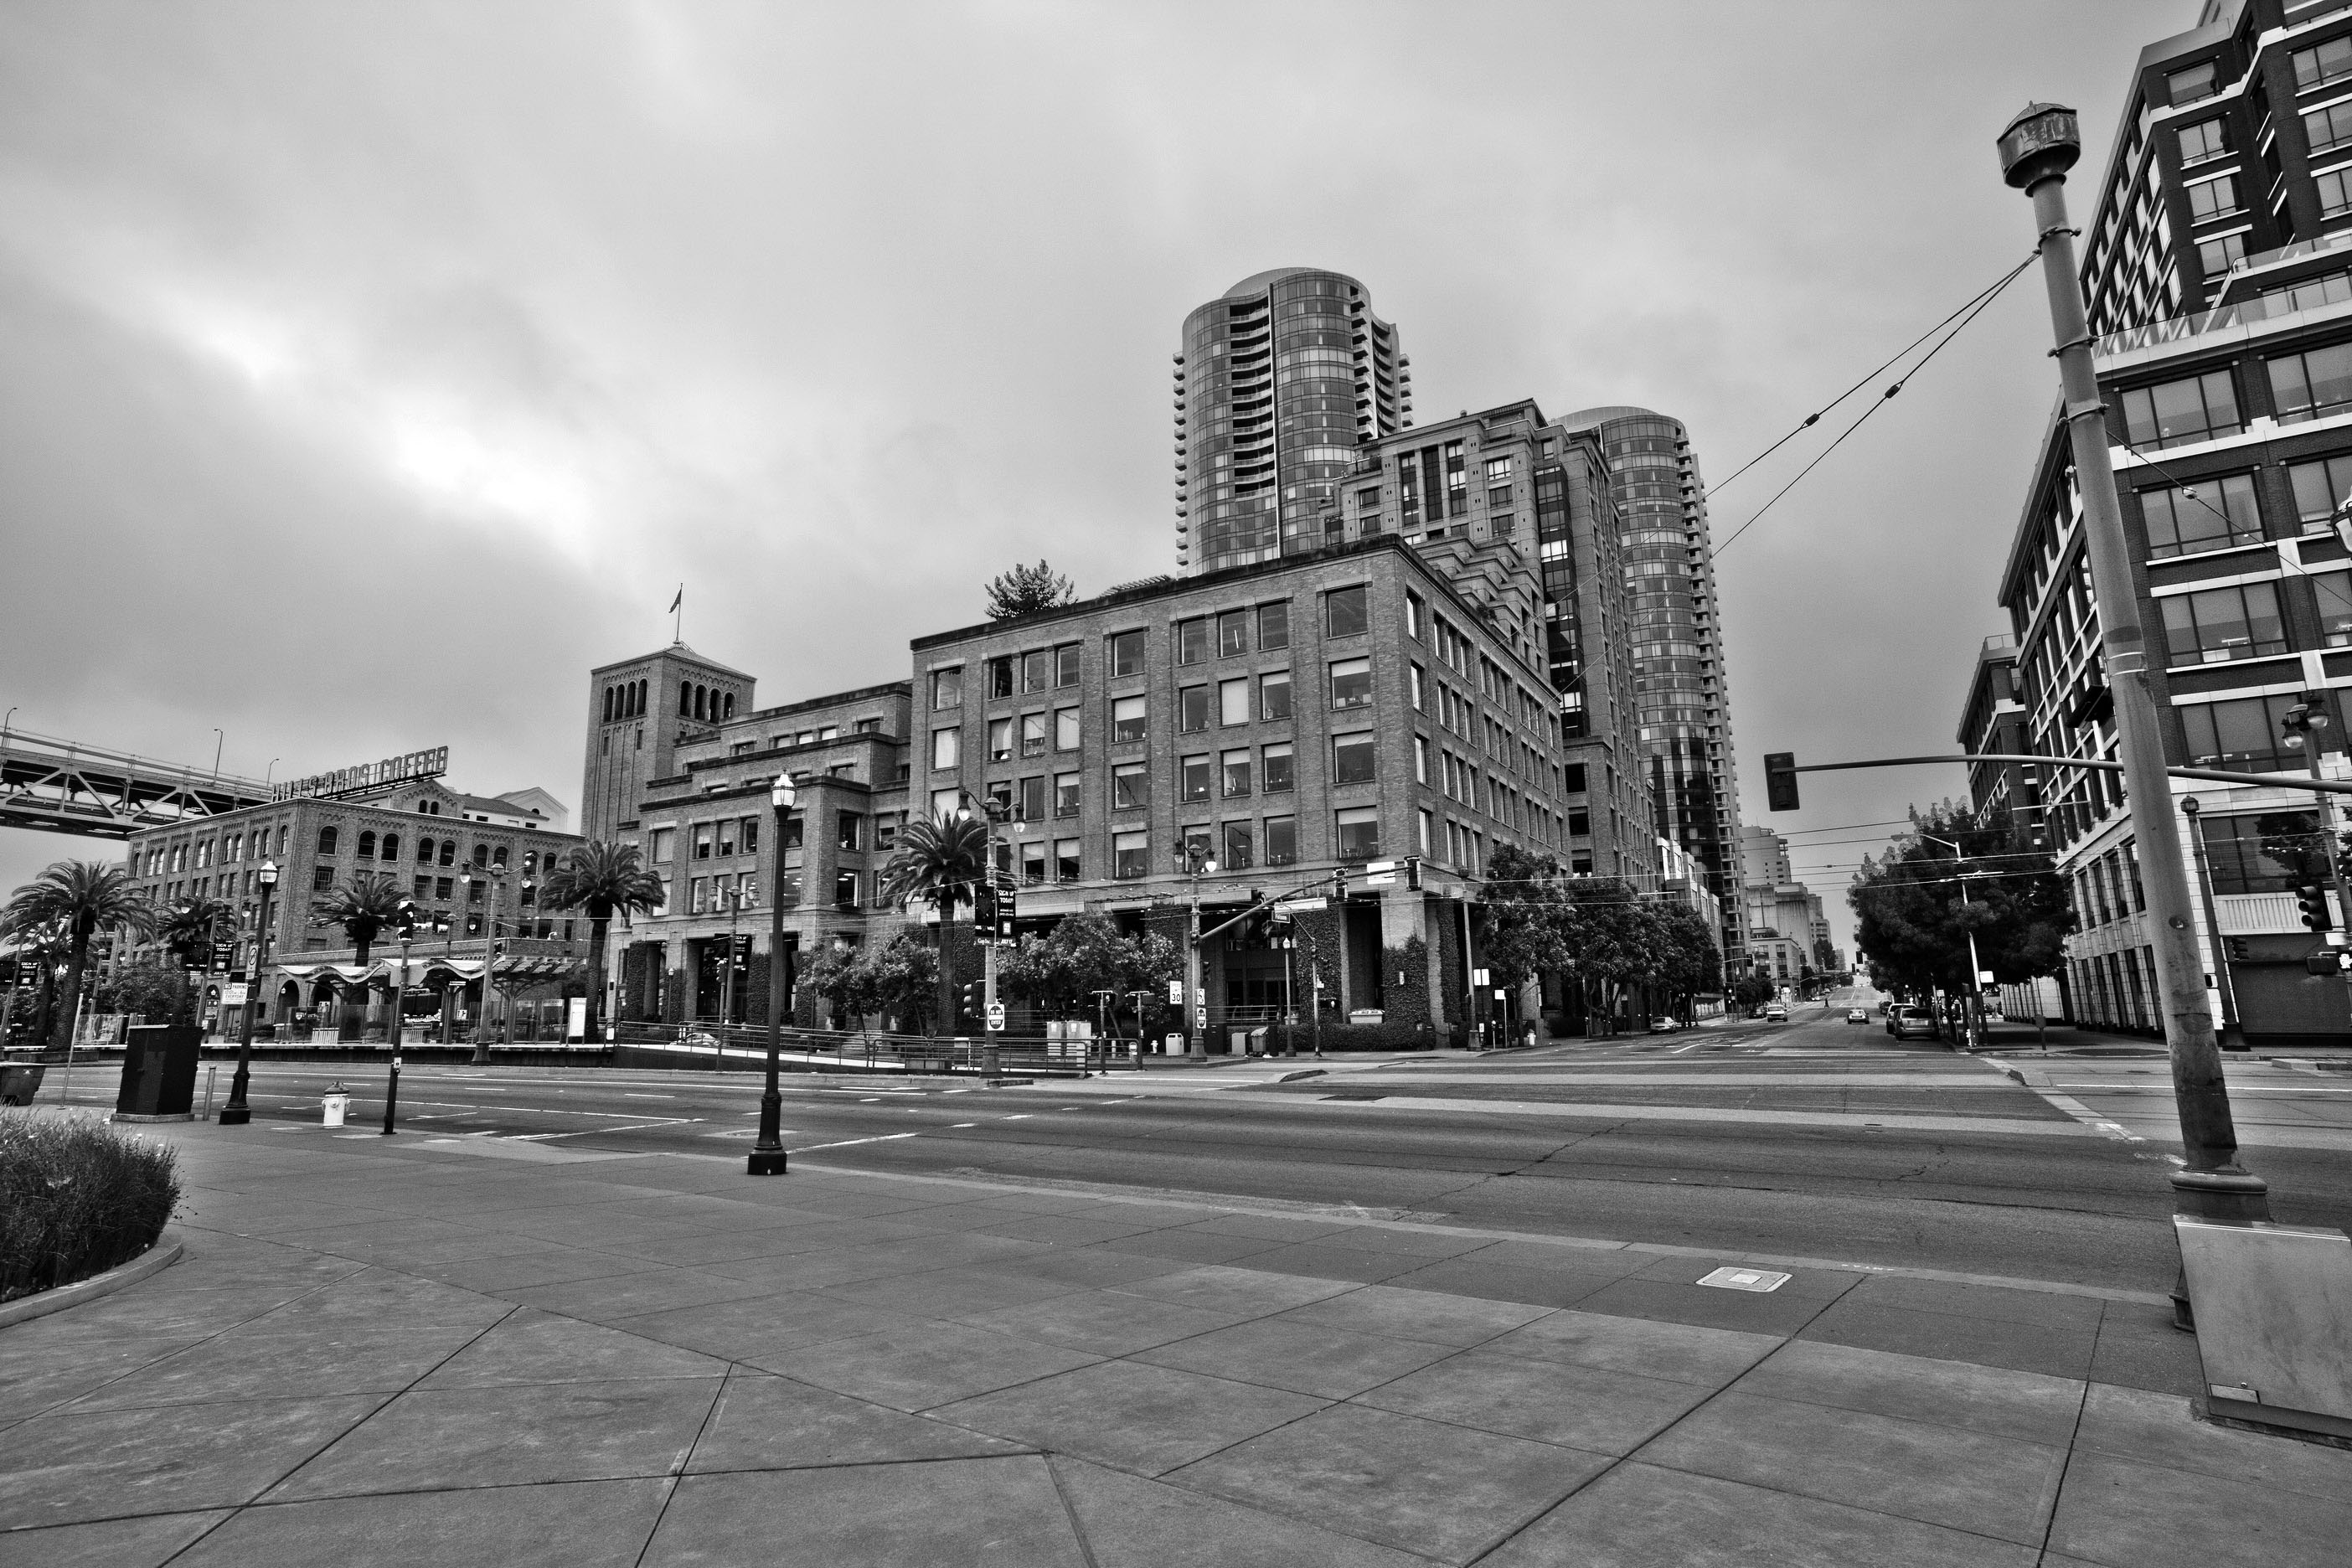 Architecture cnr The Embarcadero and Folsom St San Francisco CA July 2011 04